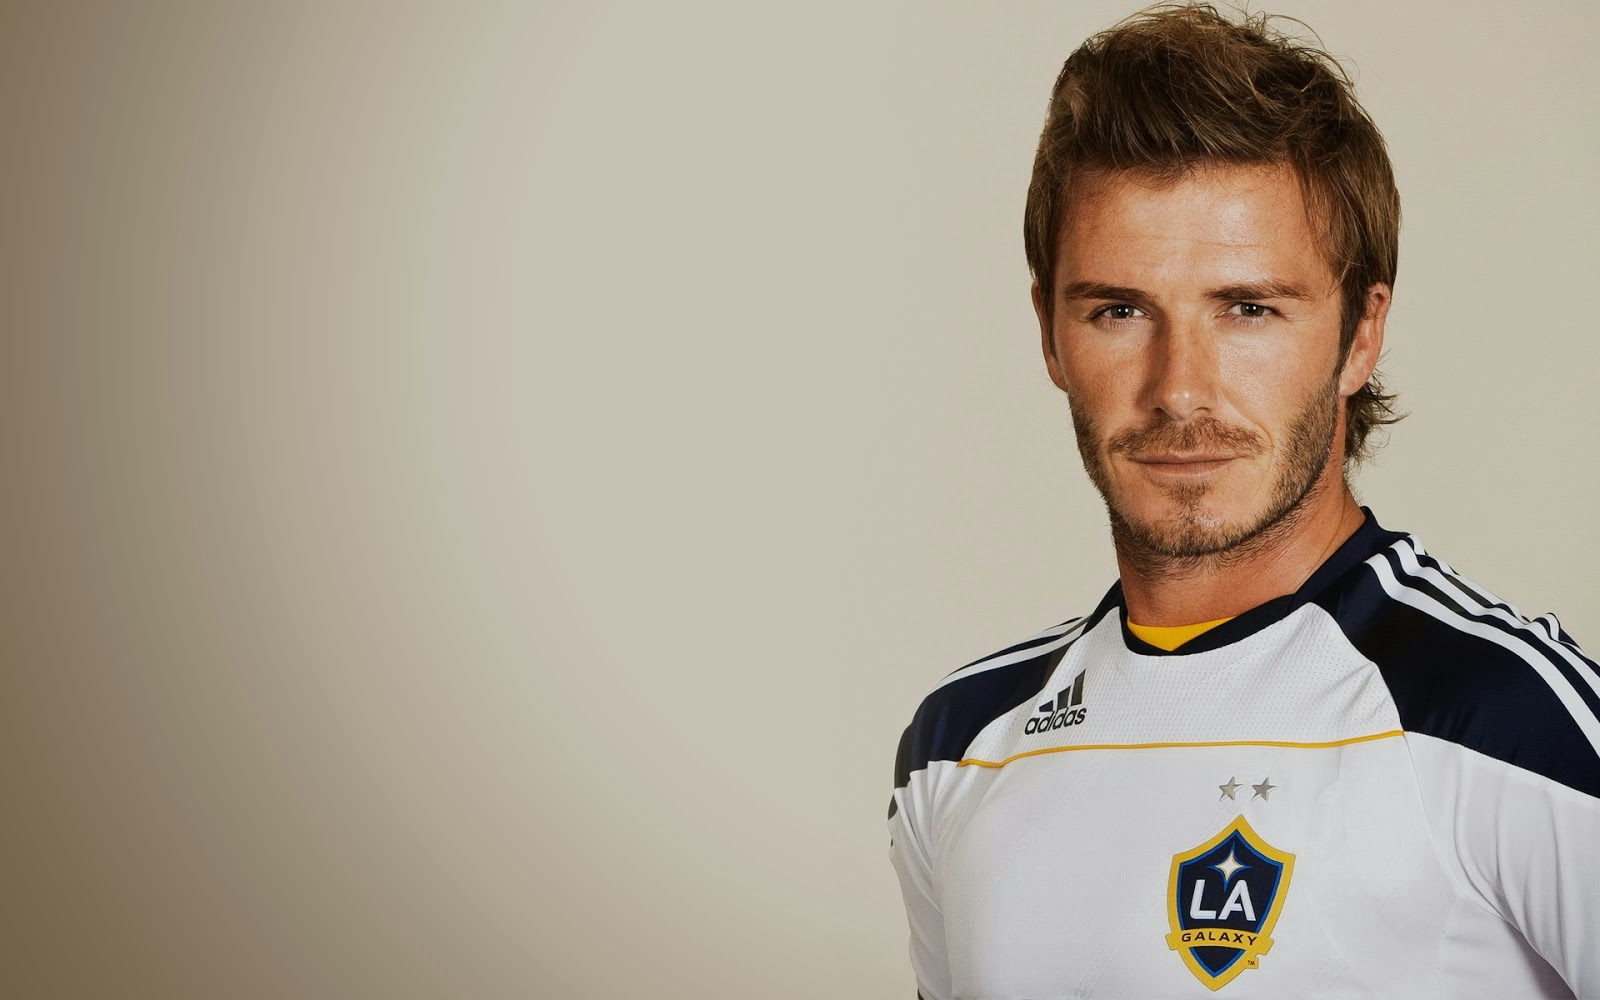 David Beckham HD Wallpapers   HD Wallpapers Blog 1600x1000